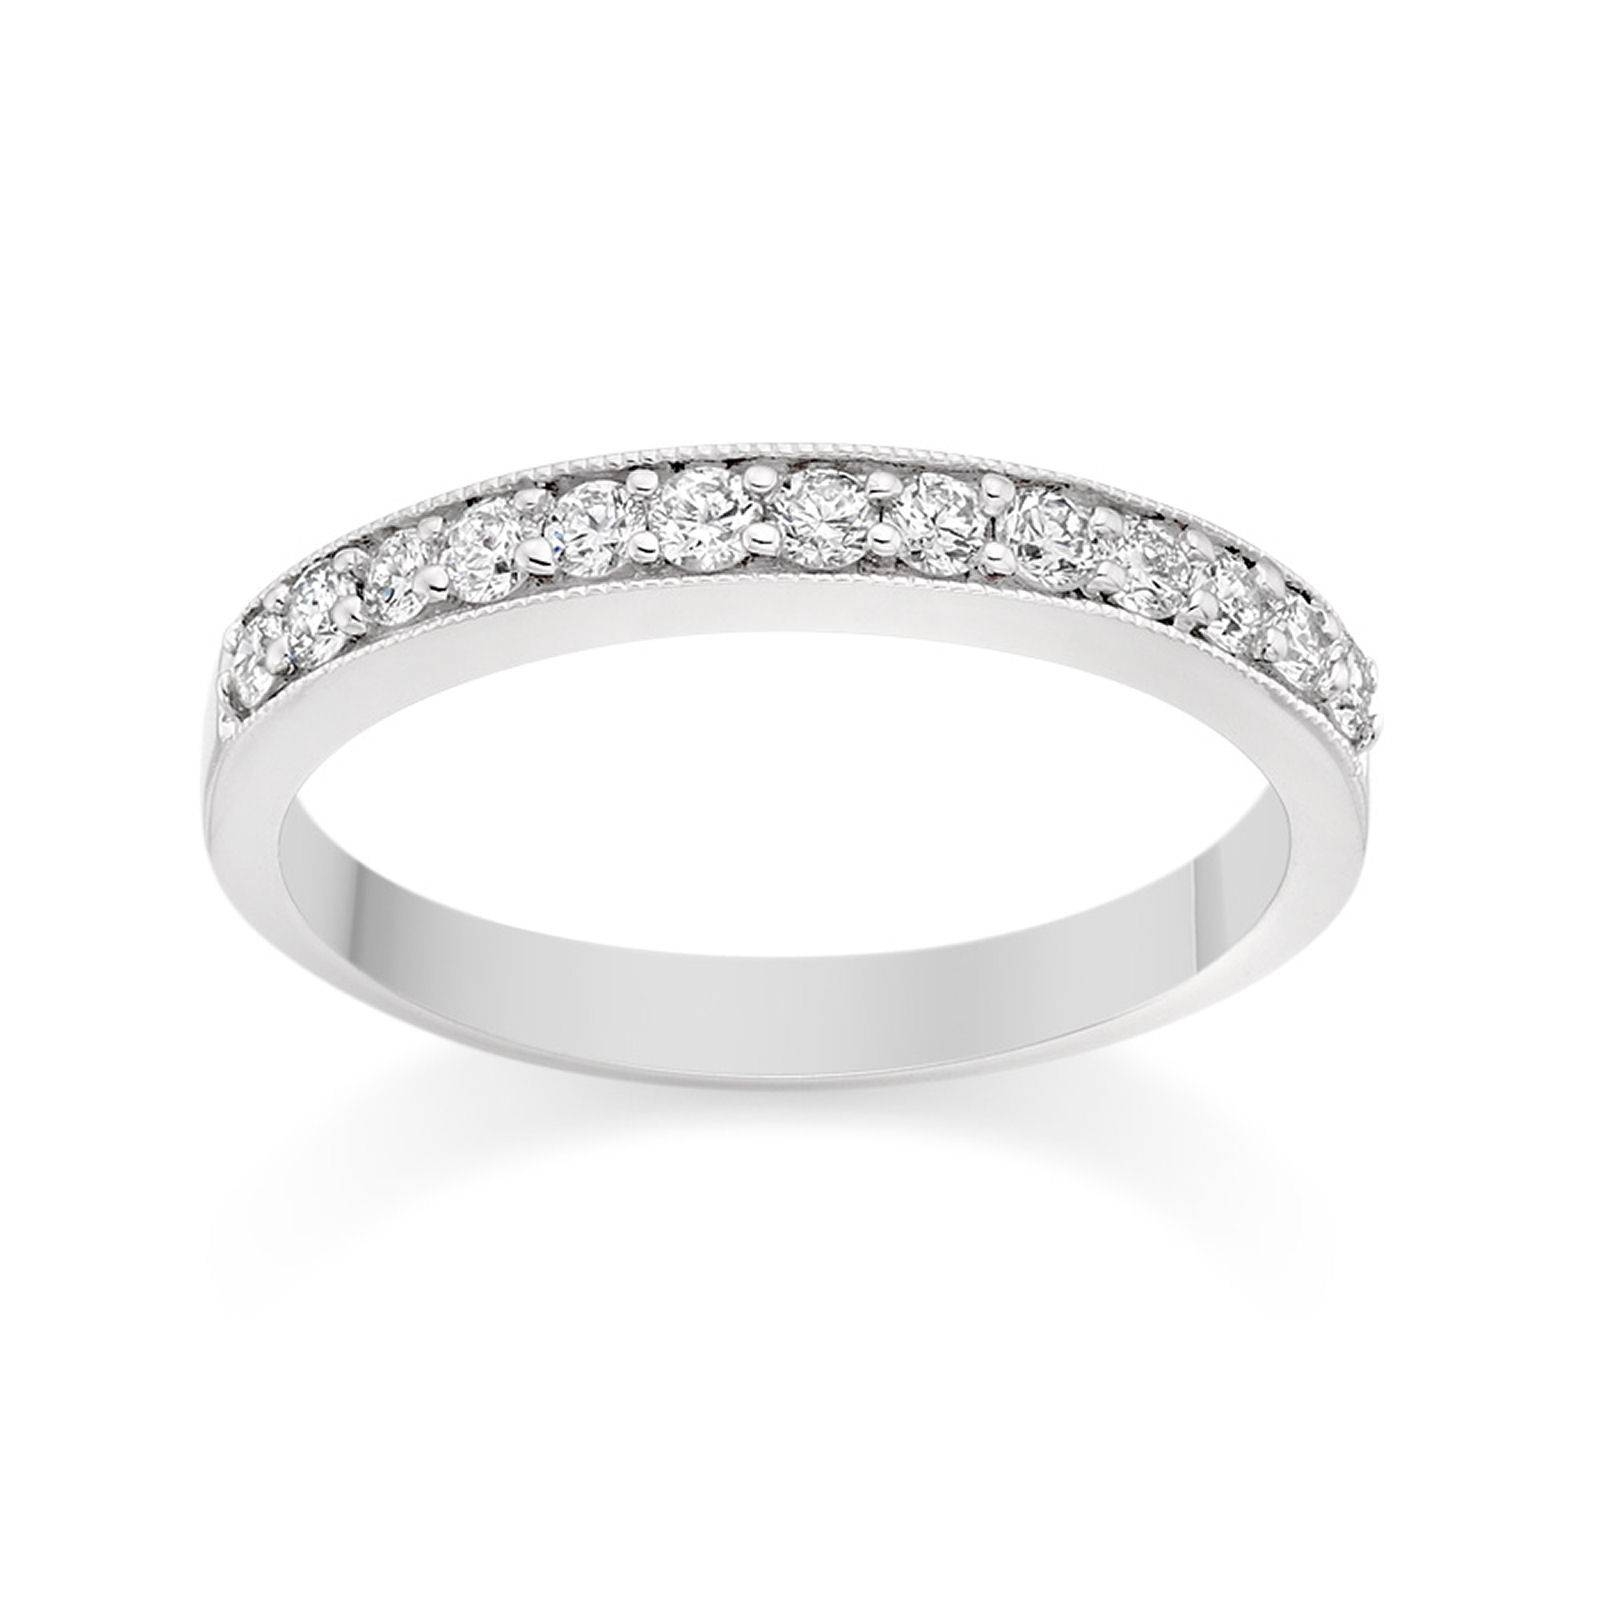 Milgrain Pave Set Diamond Wedding Ring In 18K White Gold Wedding In Best And Newest Pave Setting Wedding Bands (Gallery 3 of 15)